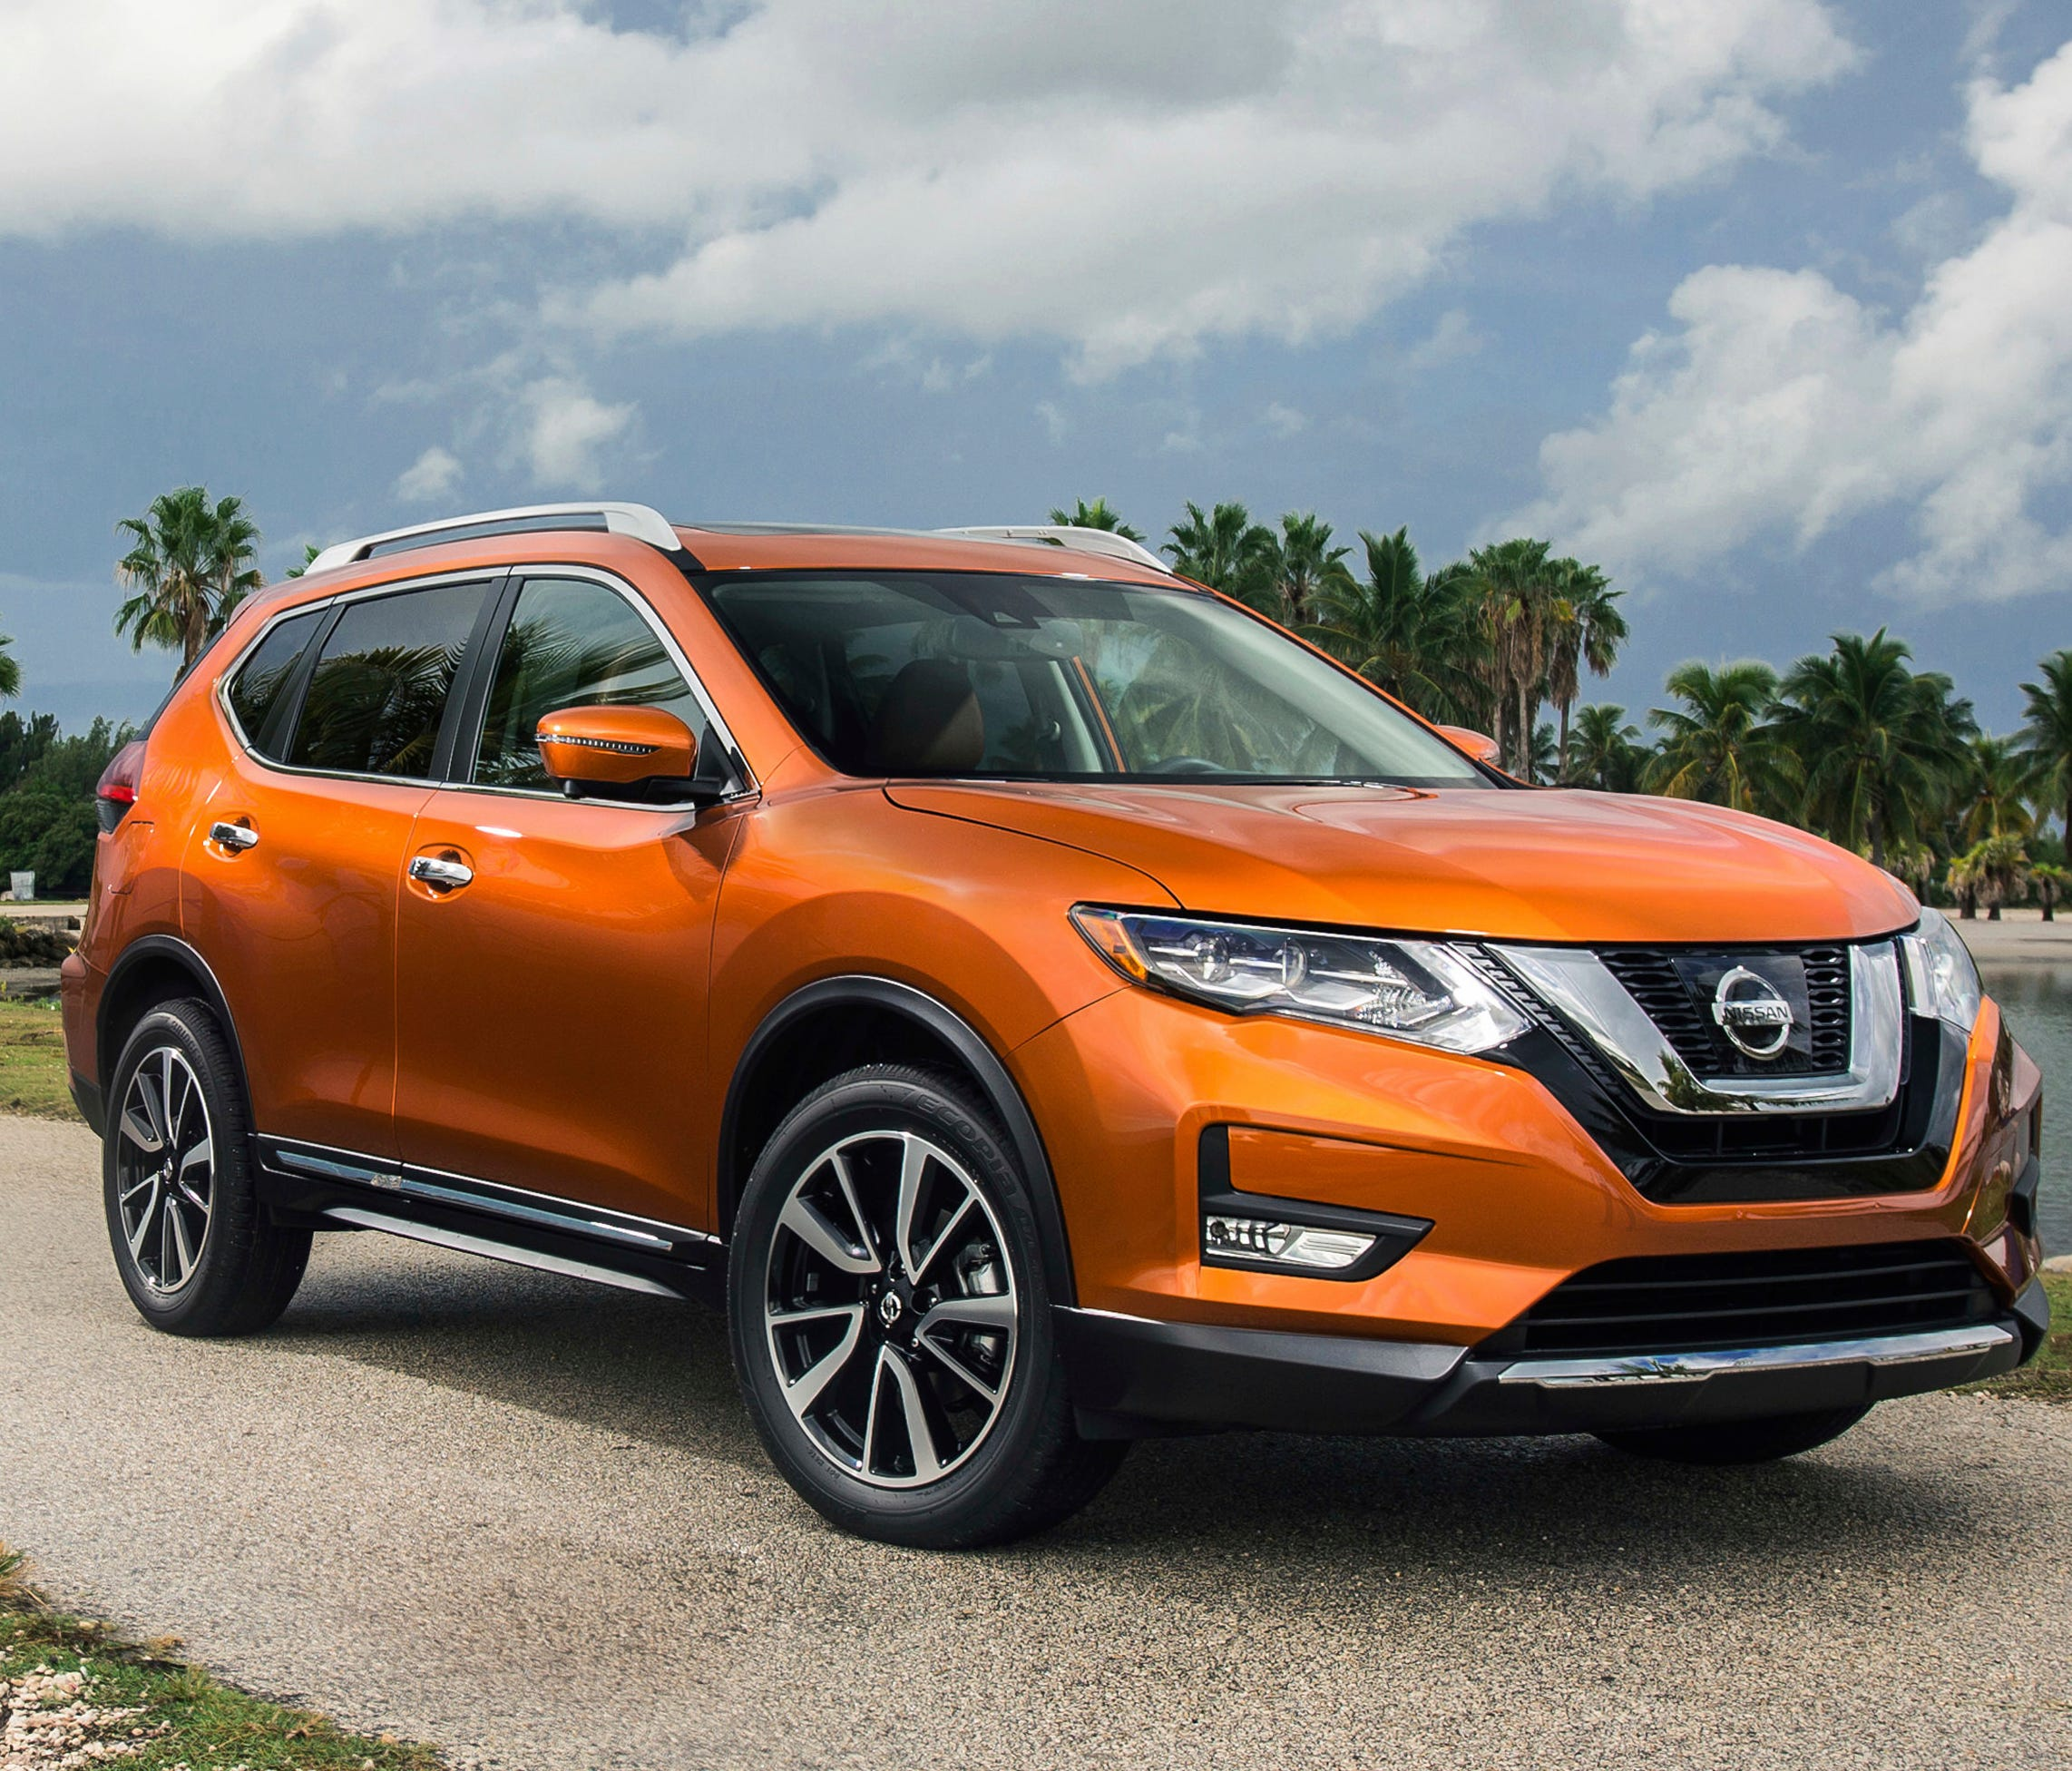 This photo provided by Nissan shows a 2018 Nissan Rogue, which is available with a semiautonomous driving system called ProPilot Assist. Nissan's new ProPilot Assist system is best on freeways with gentle turns and well-marked lanes on both sides. Th